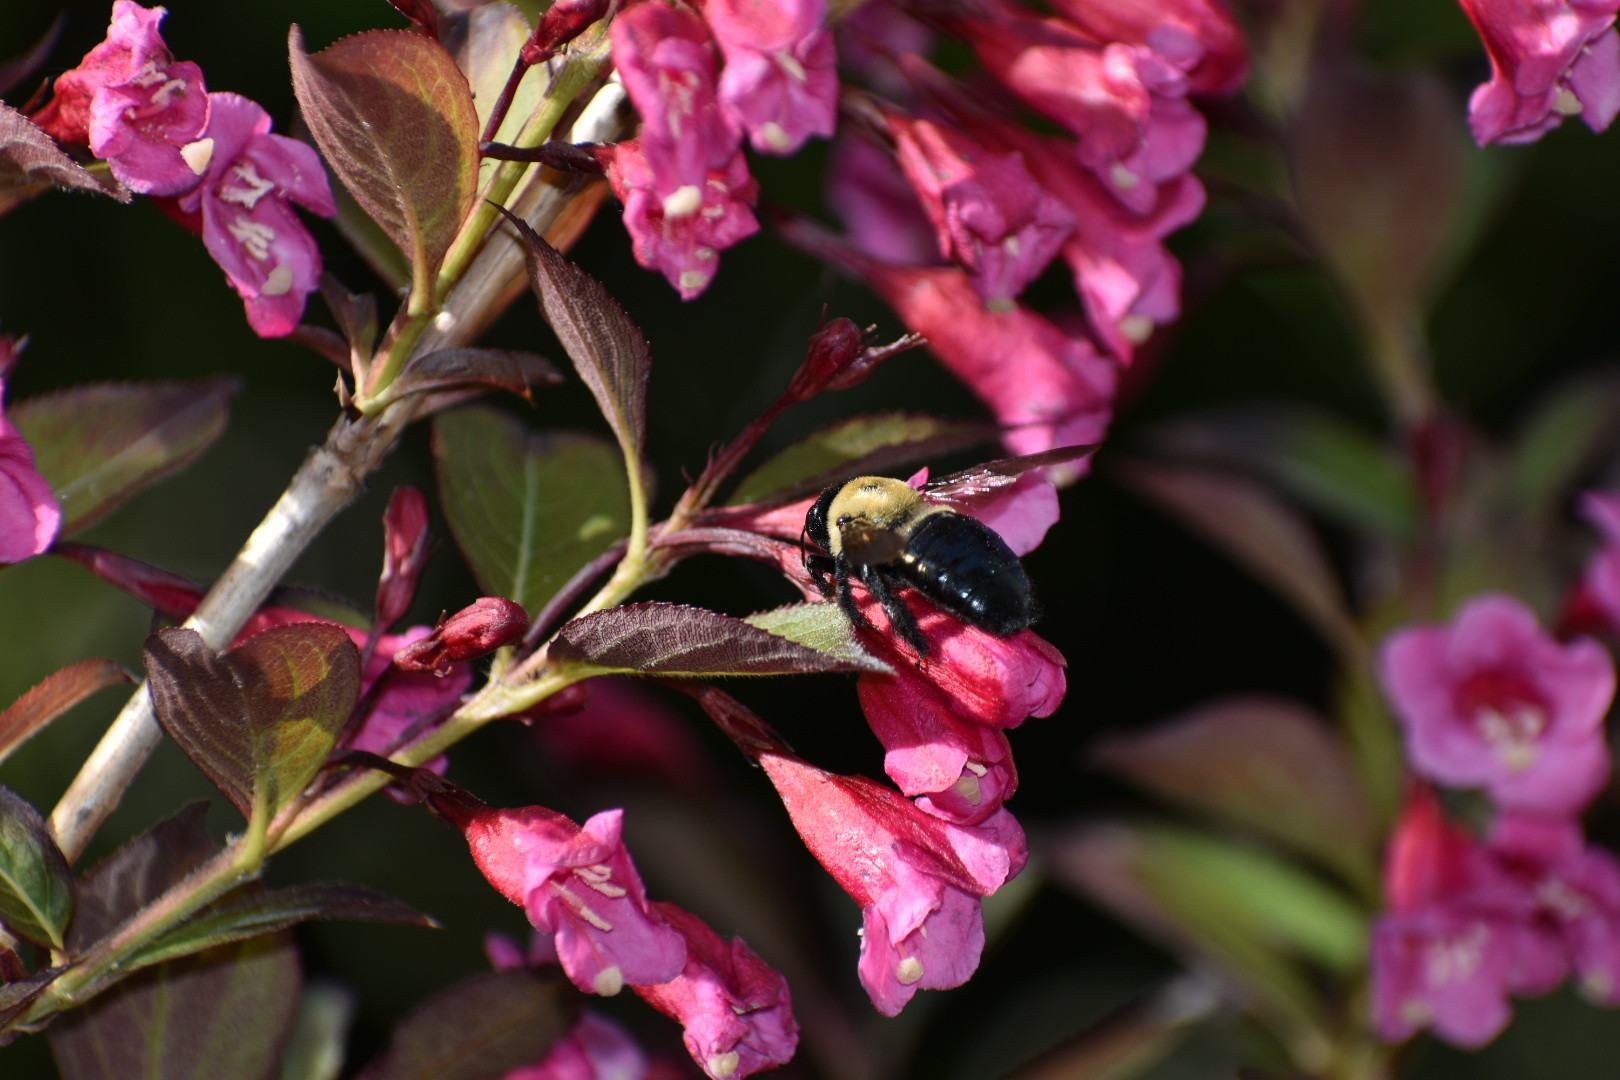 A bumble bee settles on Weigela Florida flowers, London